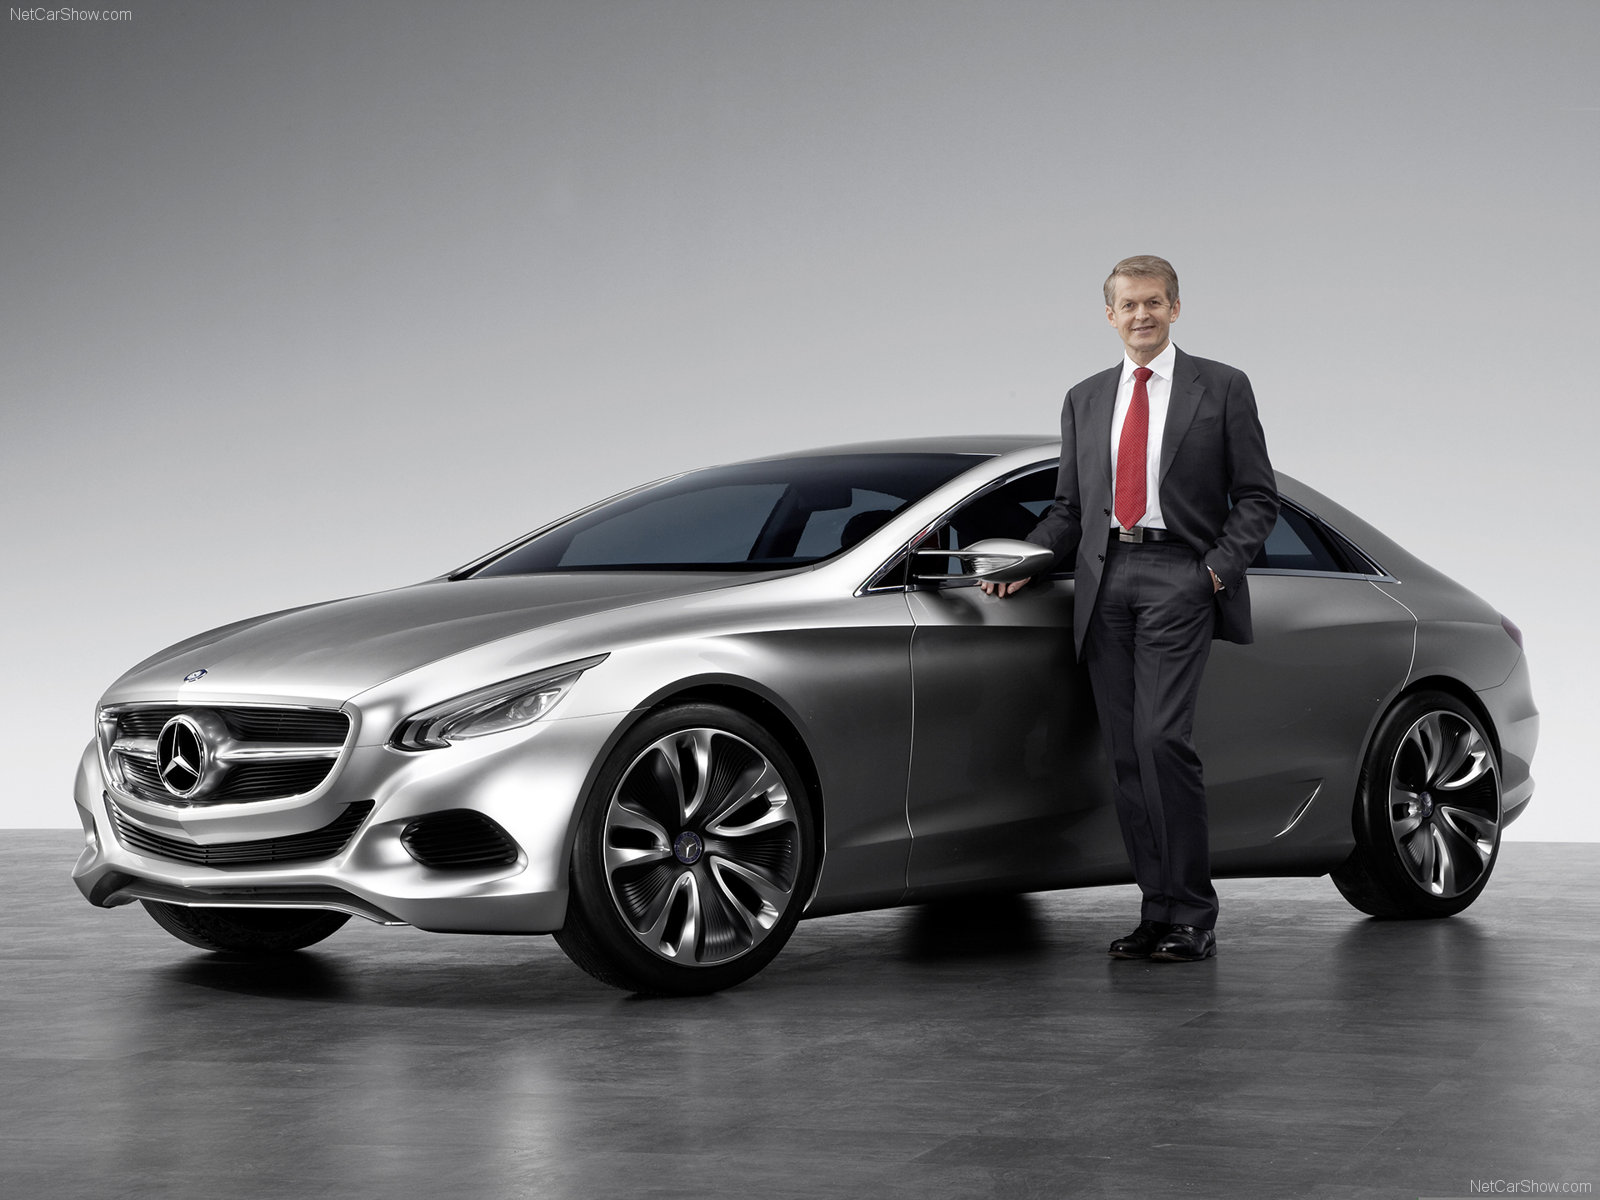 Mercedes benz f800 photos photogallery with 15 pics for Mercedes benz f800